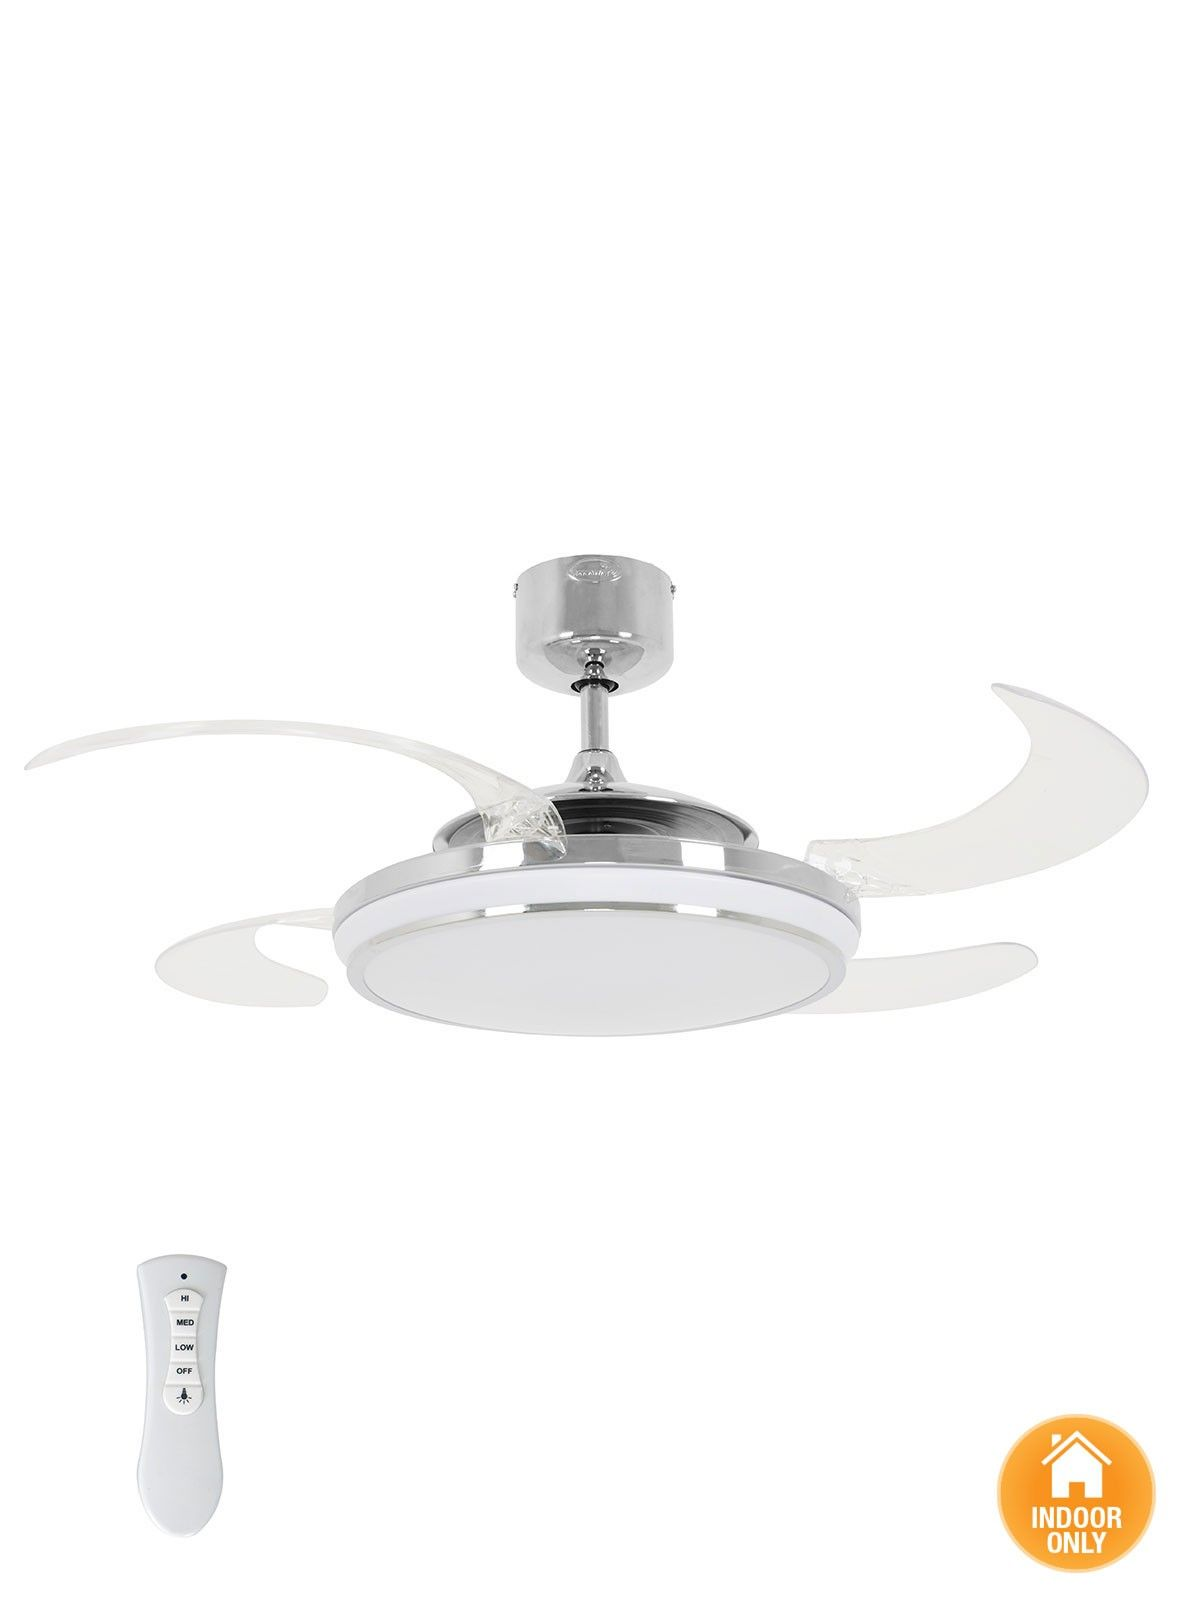 Fanaway evo1 prevail chrome ceiling fan with clear retractable fanaway evo1 prevail chrome ceiling fan with clear retractable blades and led light and remote aloadofball Gallery